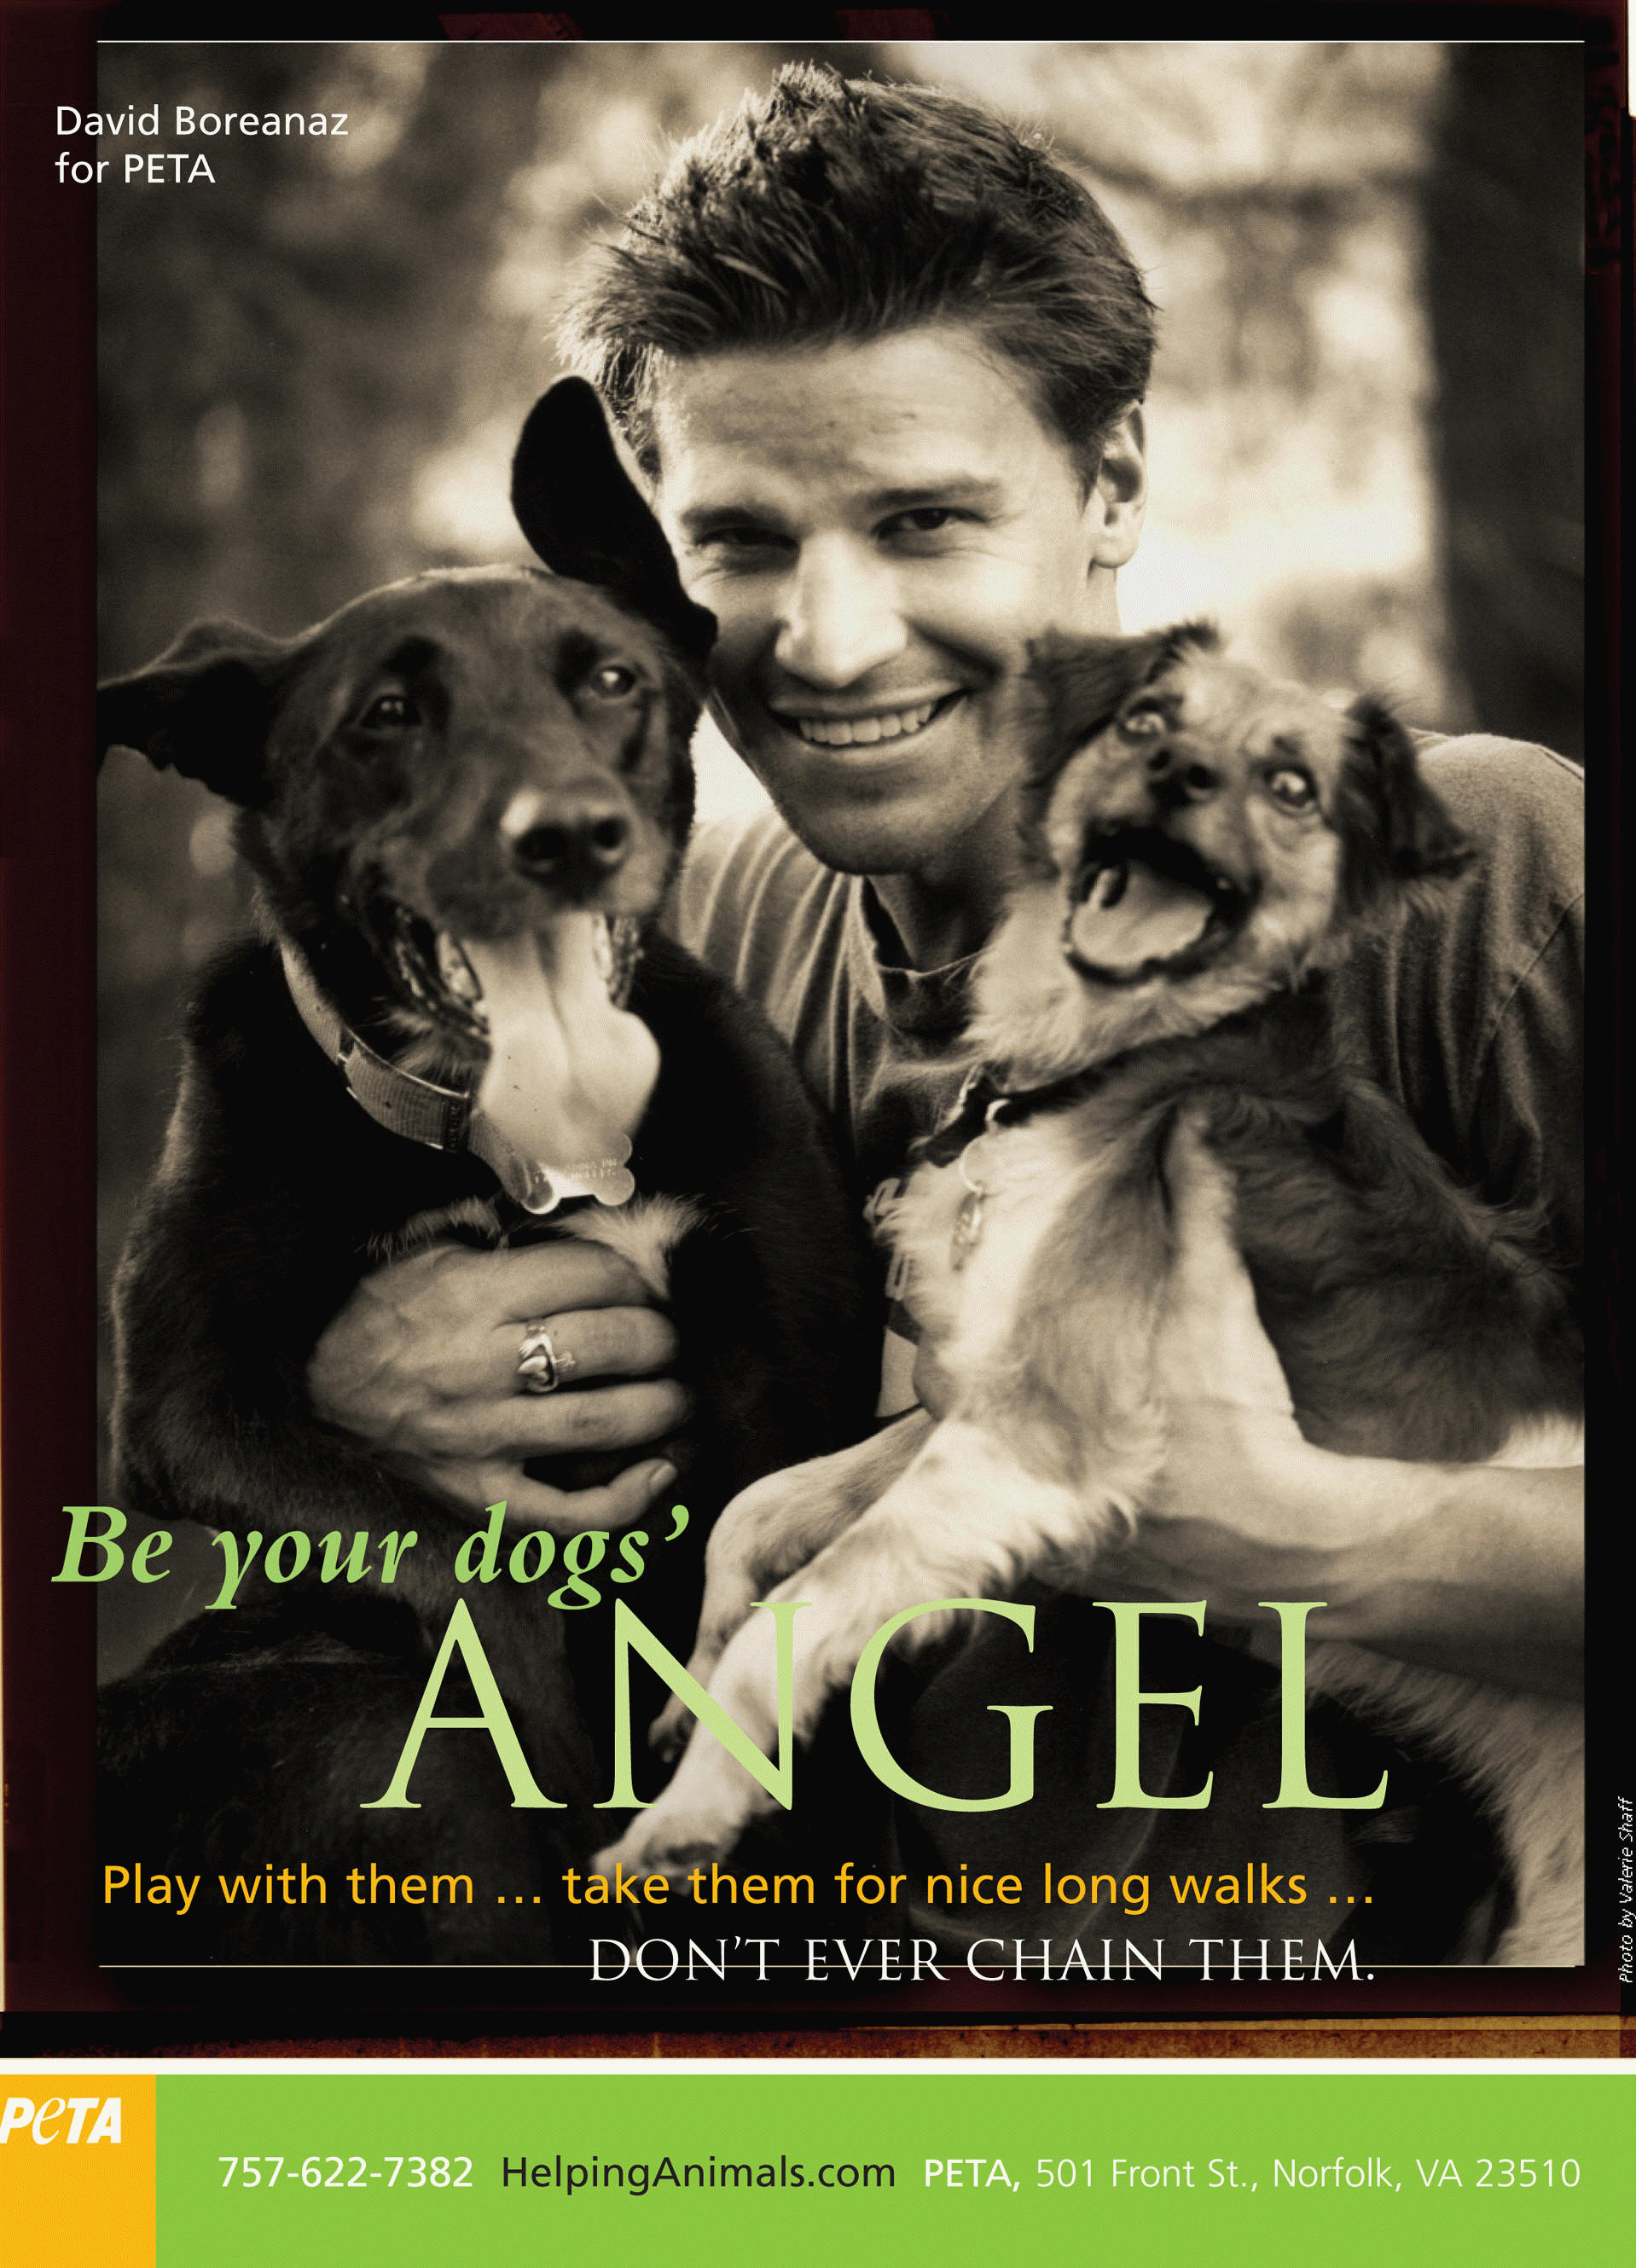 David Boreanaz for PETA